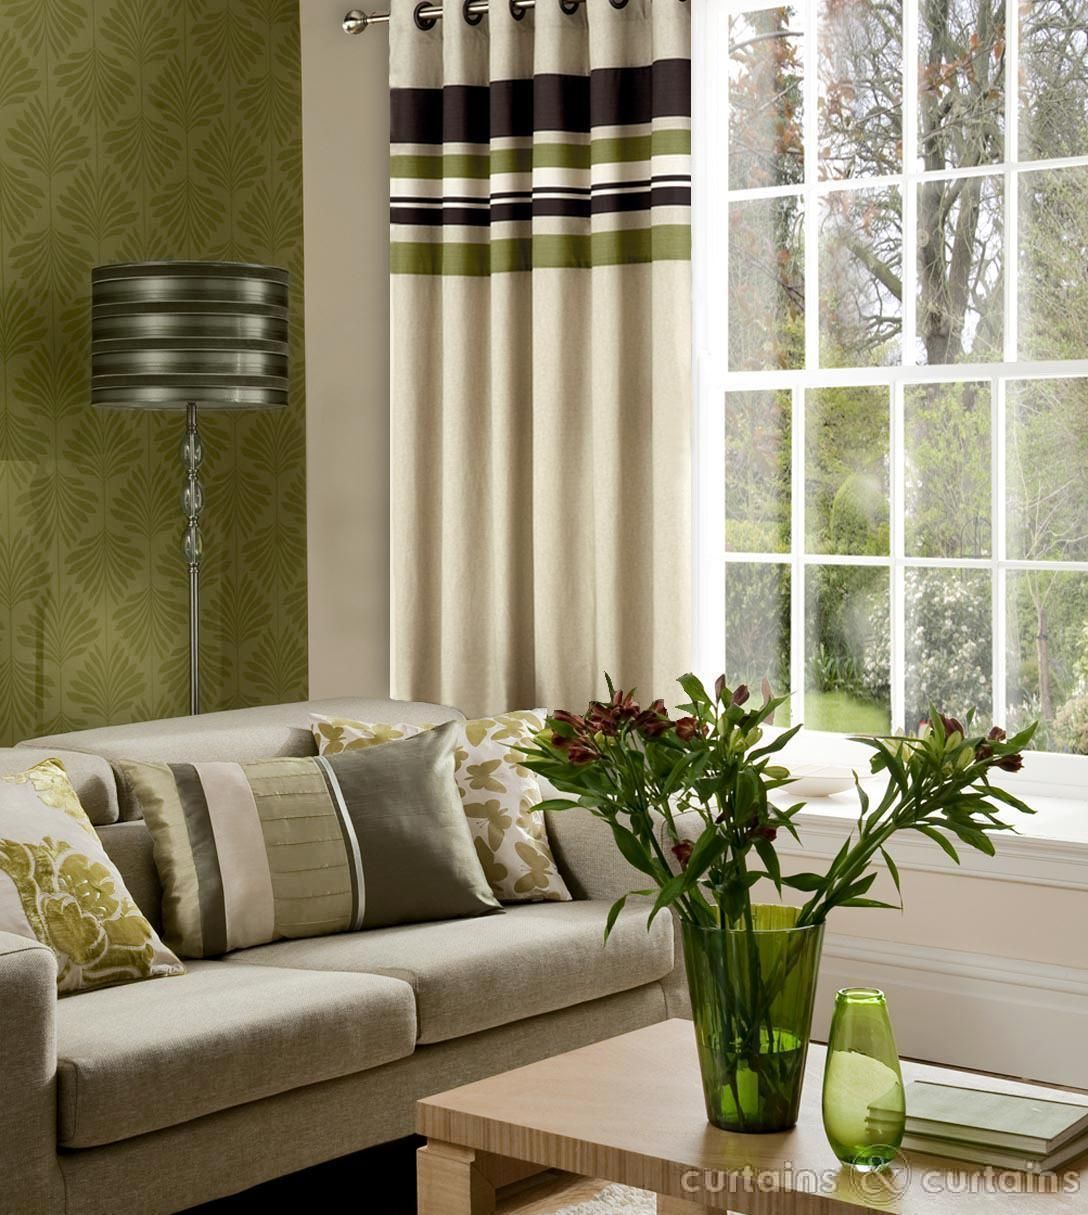 Yale green brown striped eyelet curtains curtains and curtains